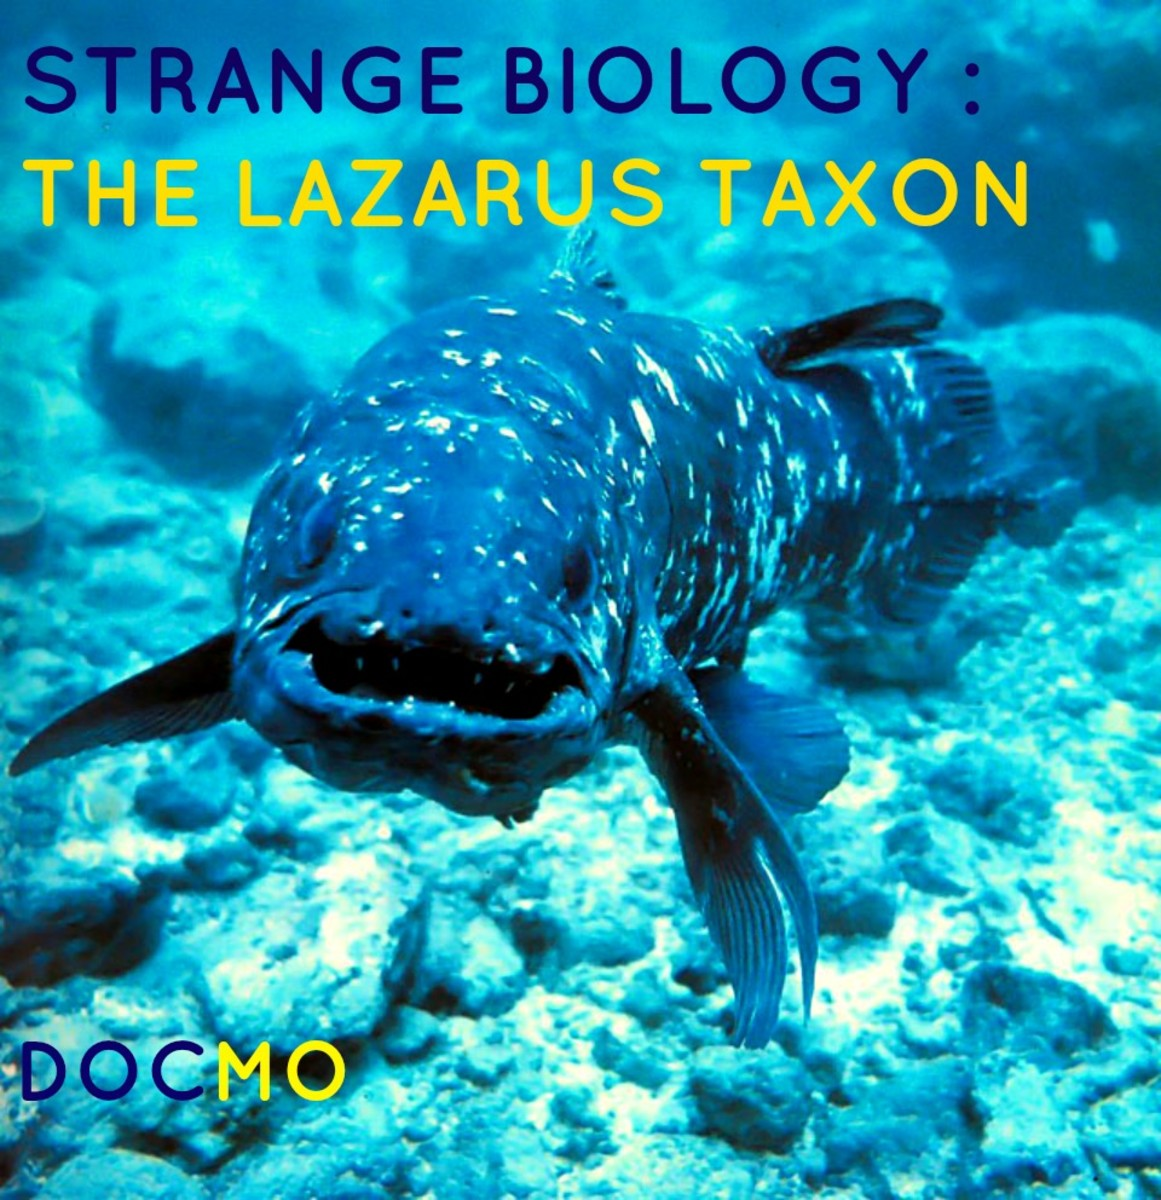 Strange Biology: The Lazarus Taxon